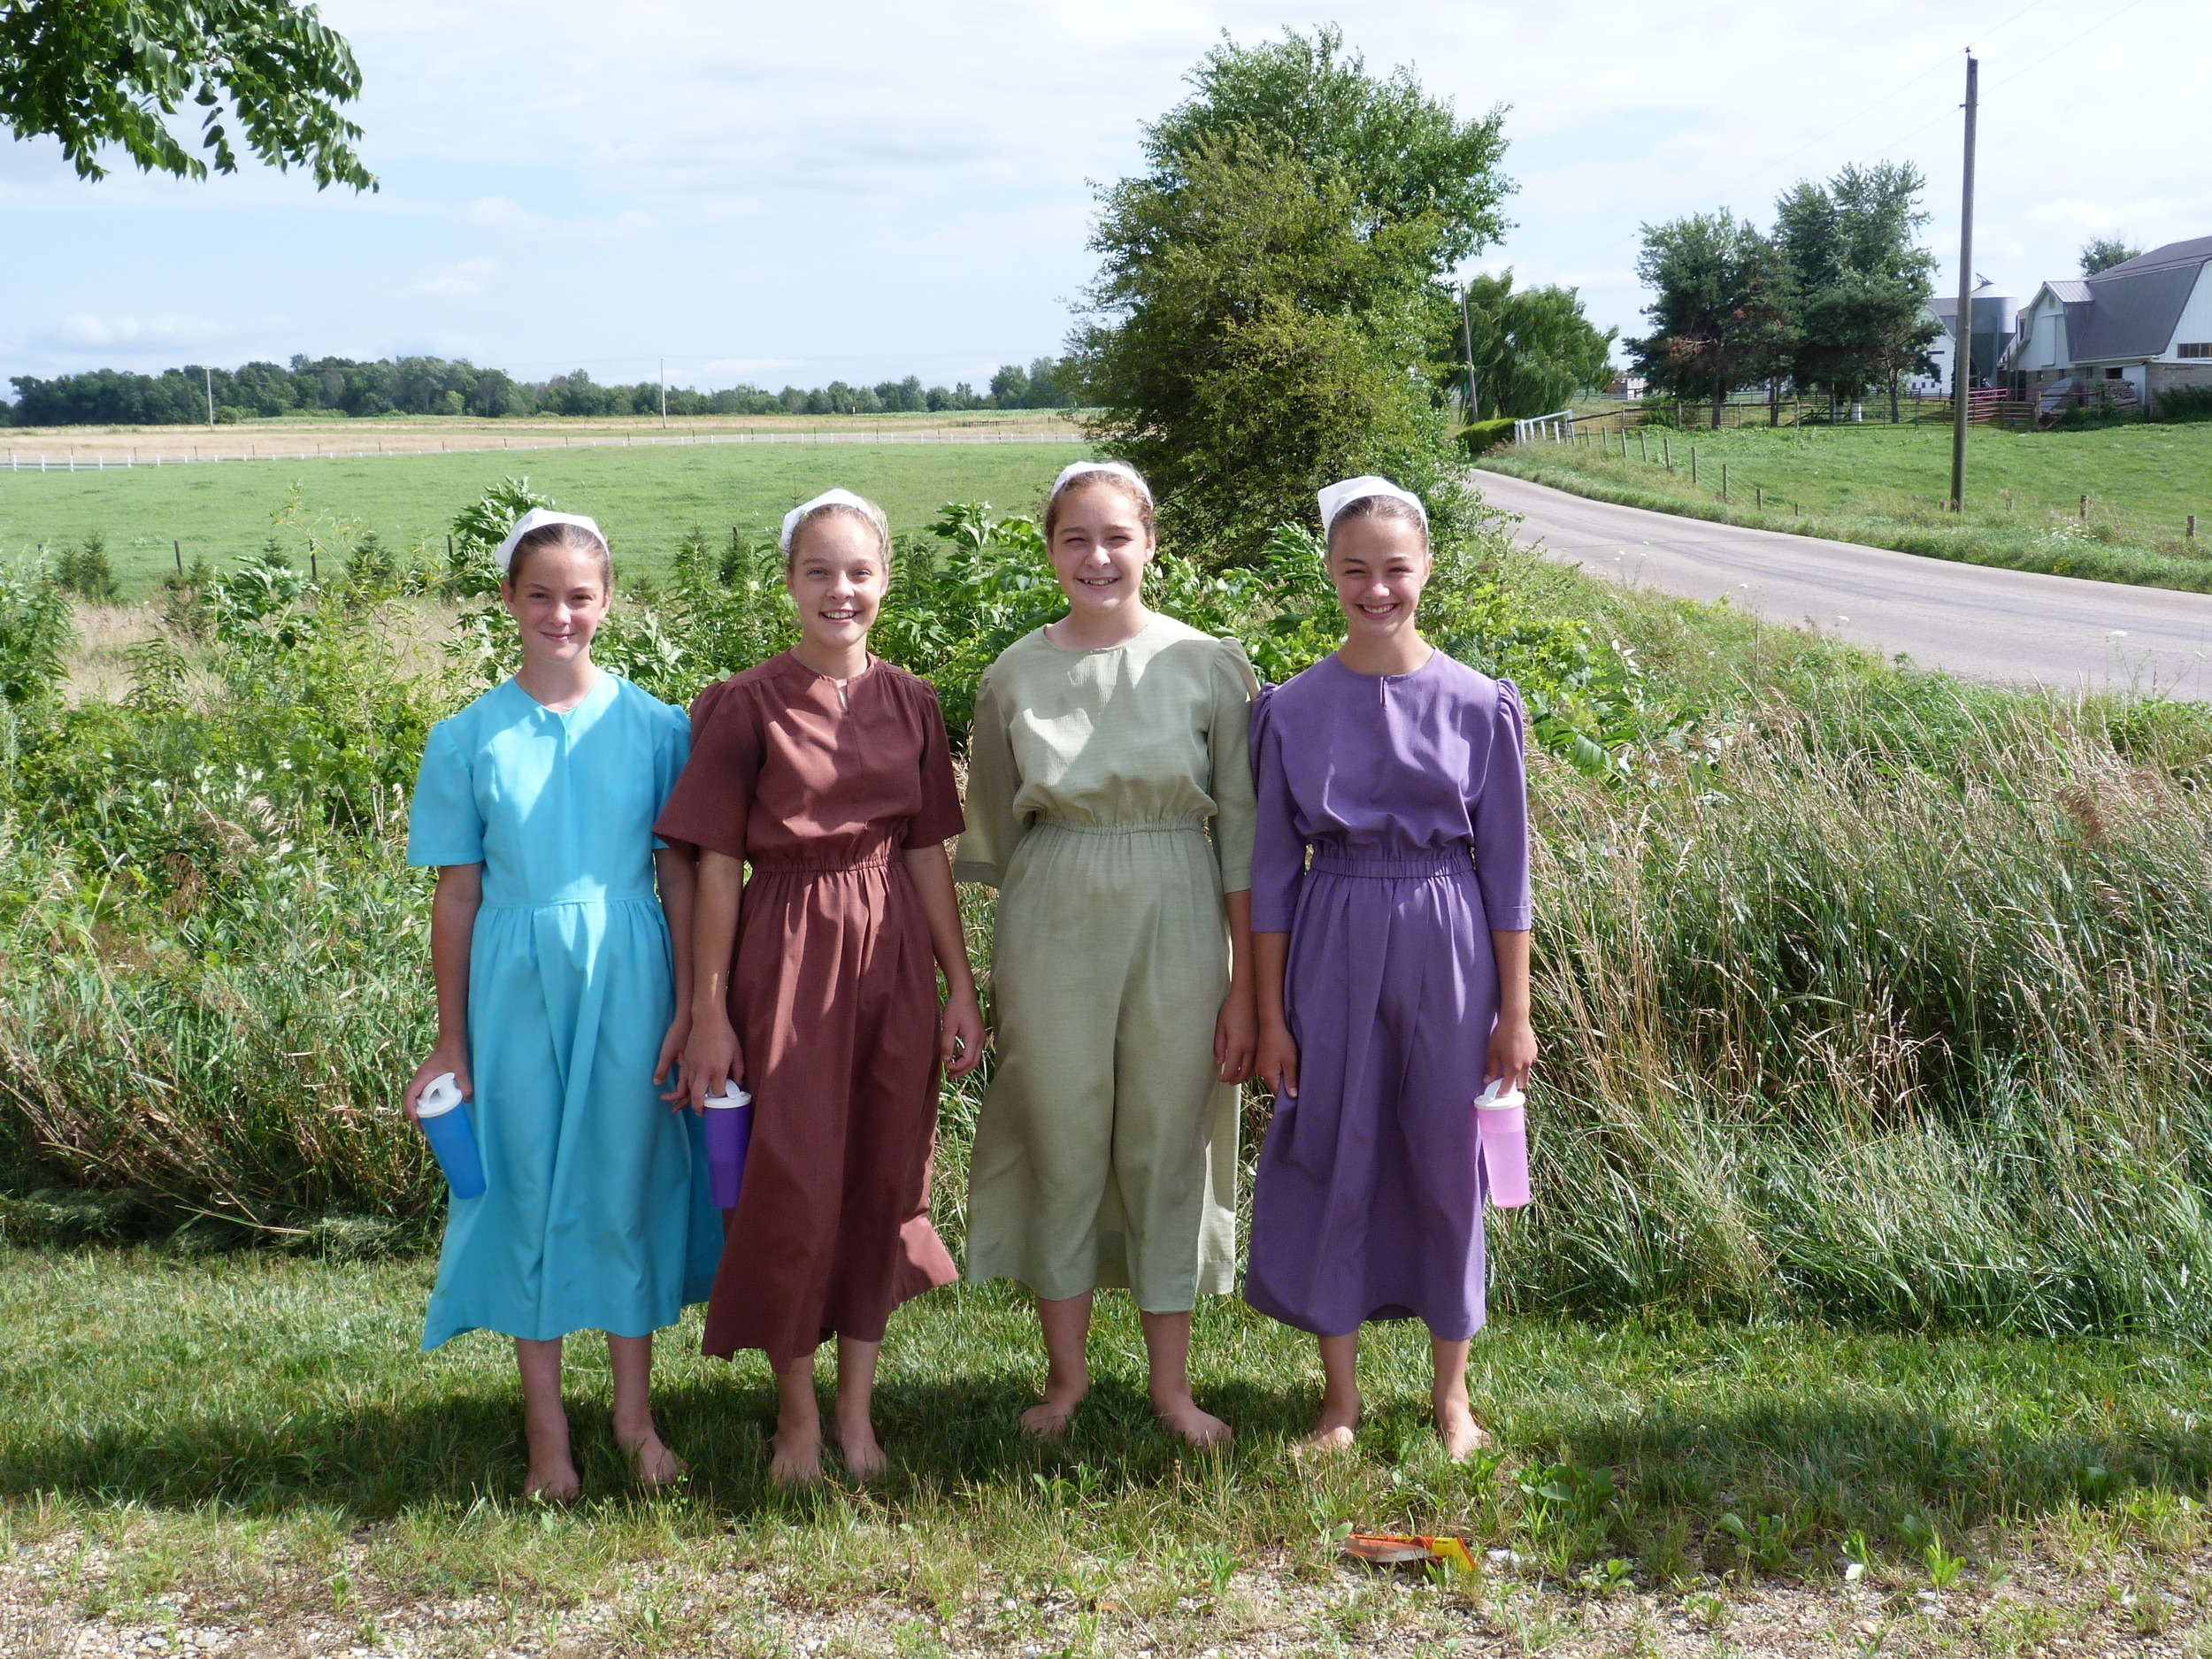 Amish girls passing by.